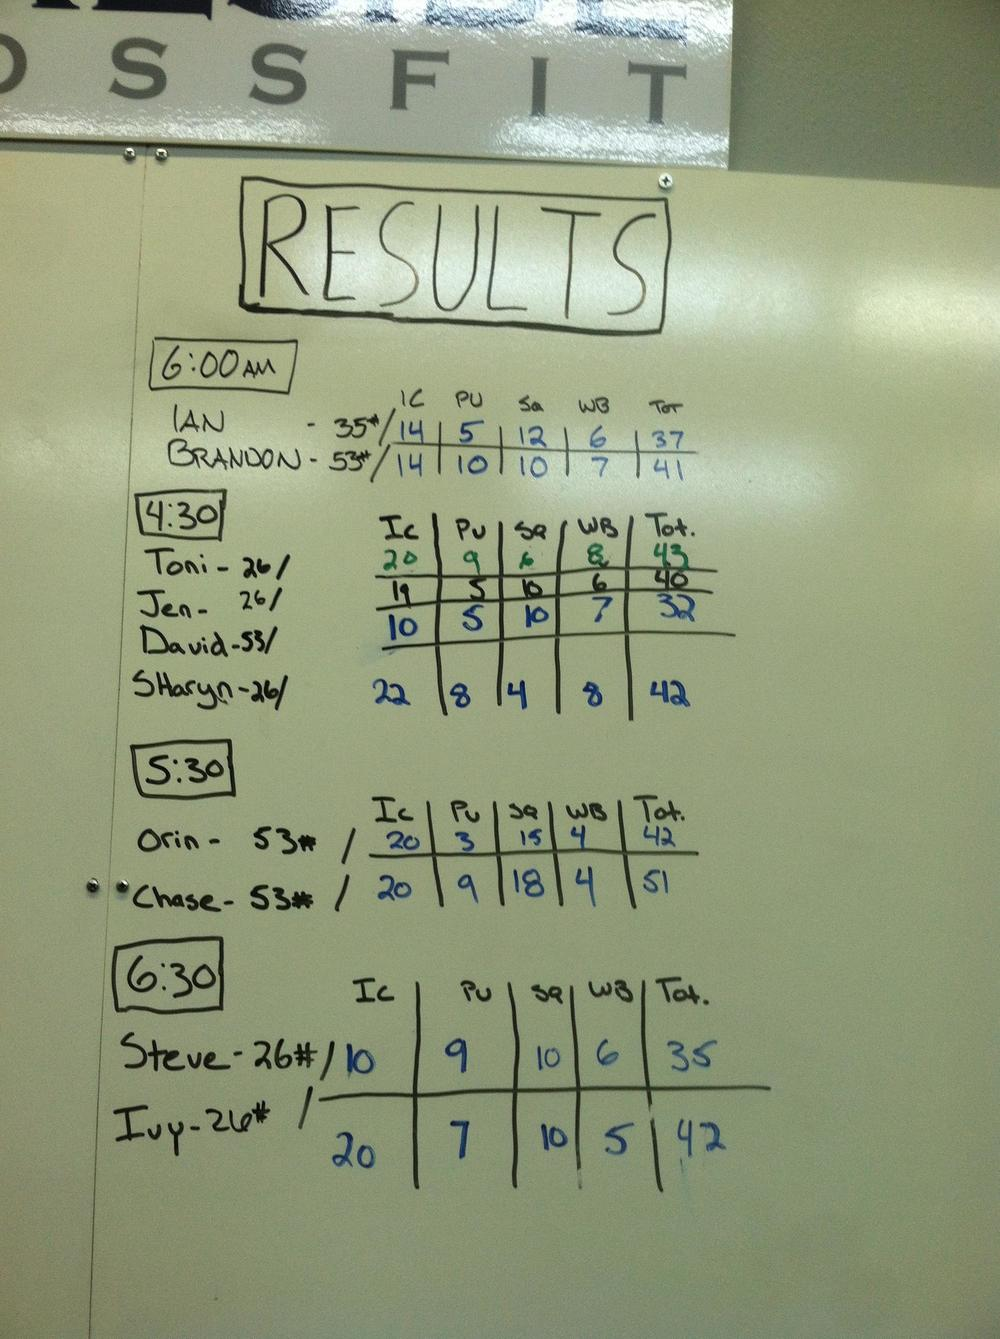 Results from 10/17!